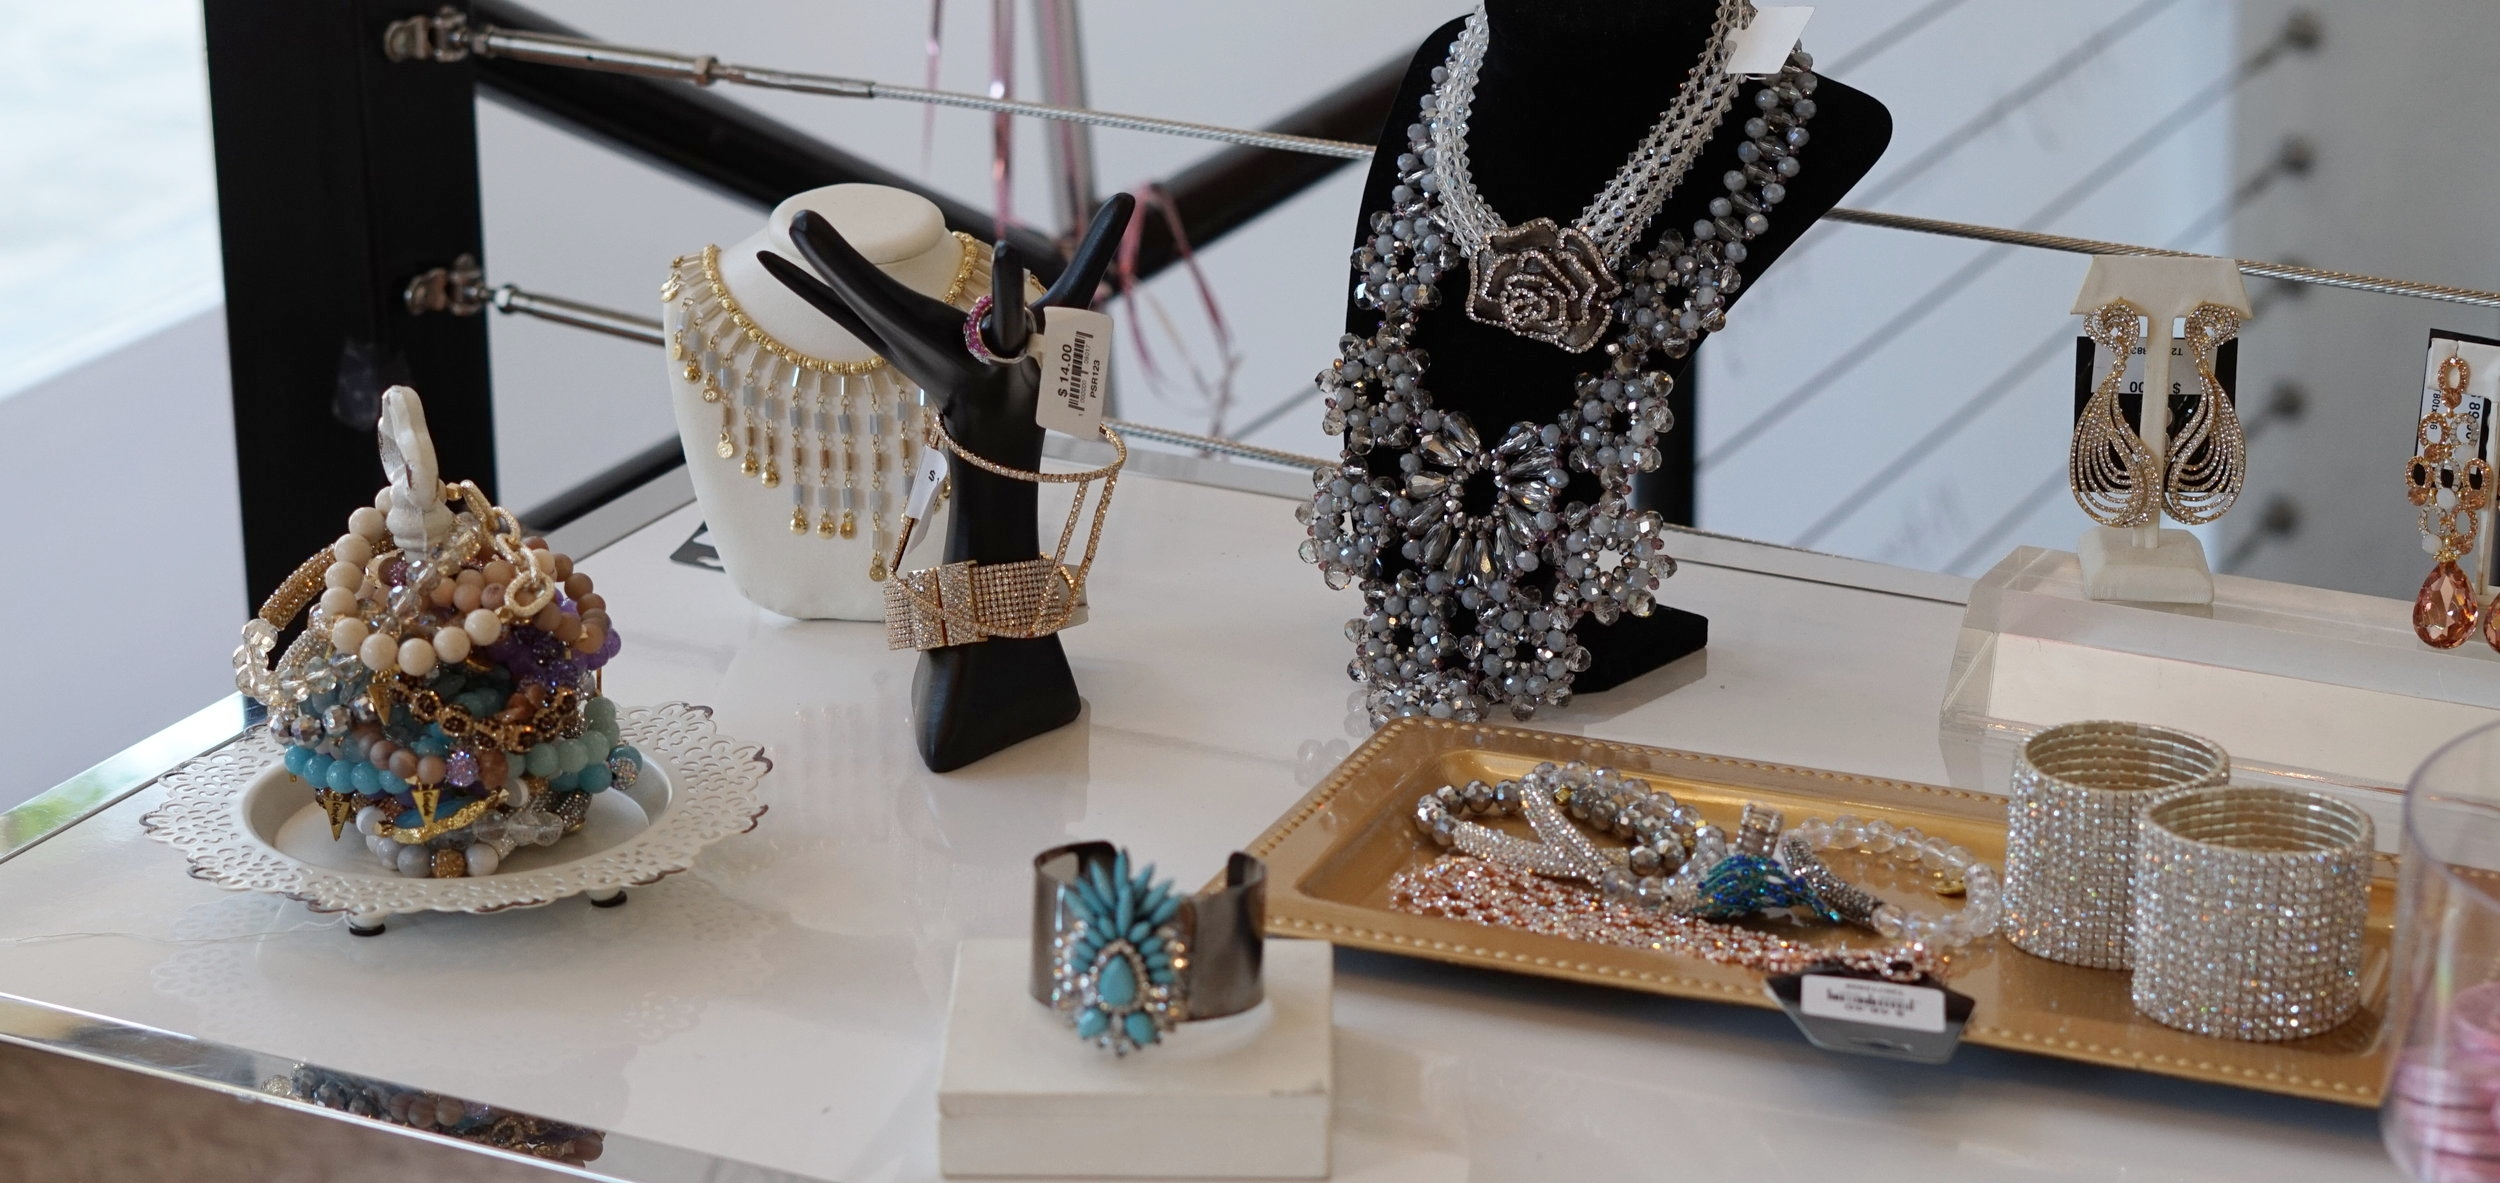 You can't forget about the sparkly jewels!!! There are quite a few unique pieces in the store.